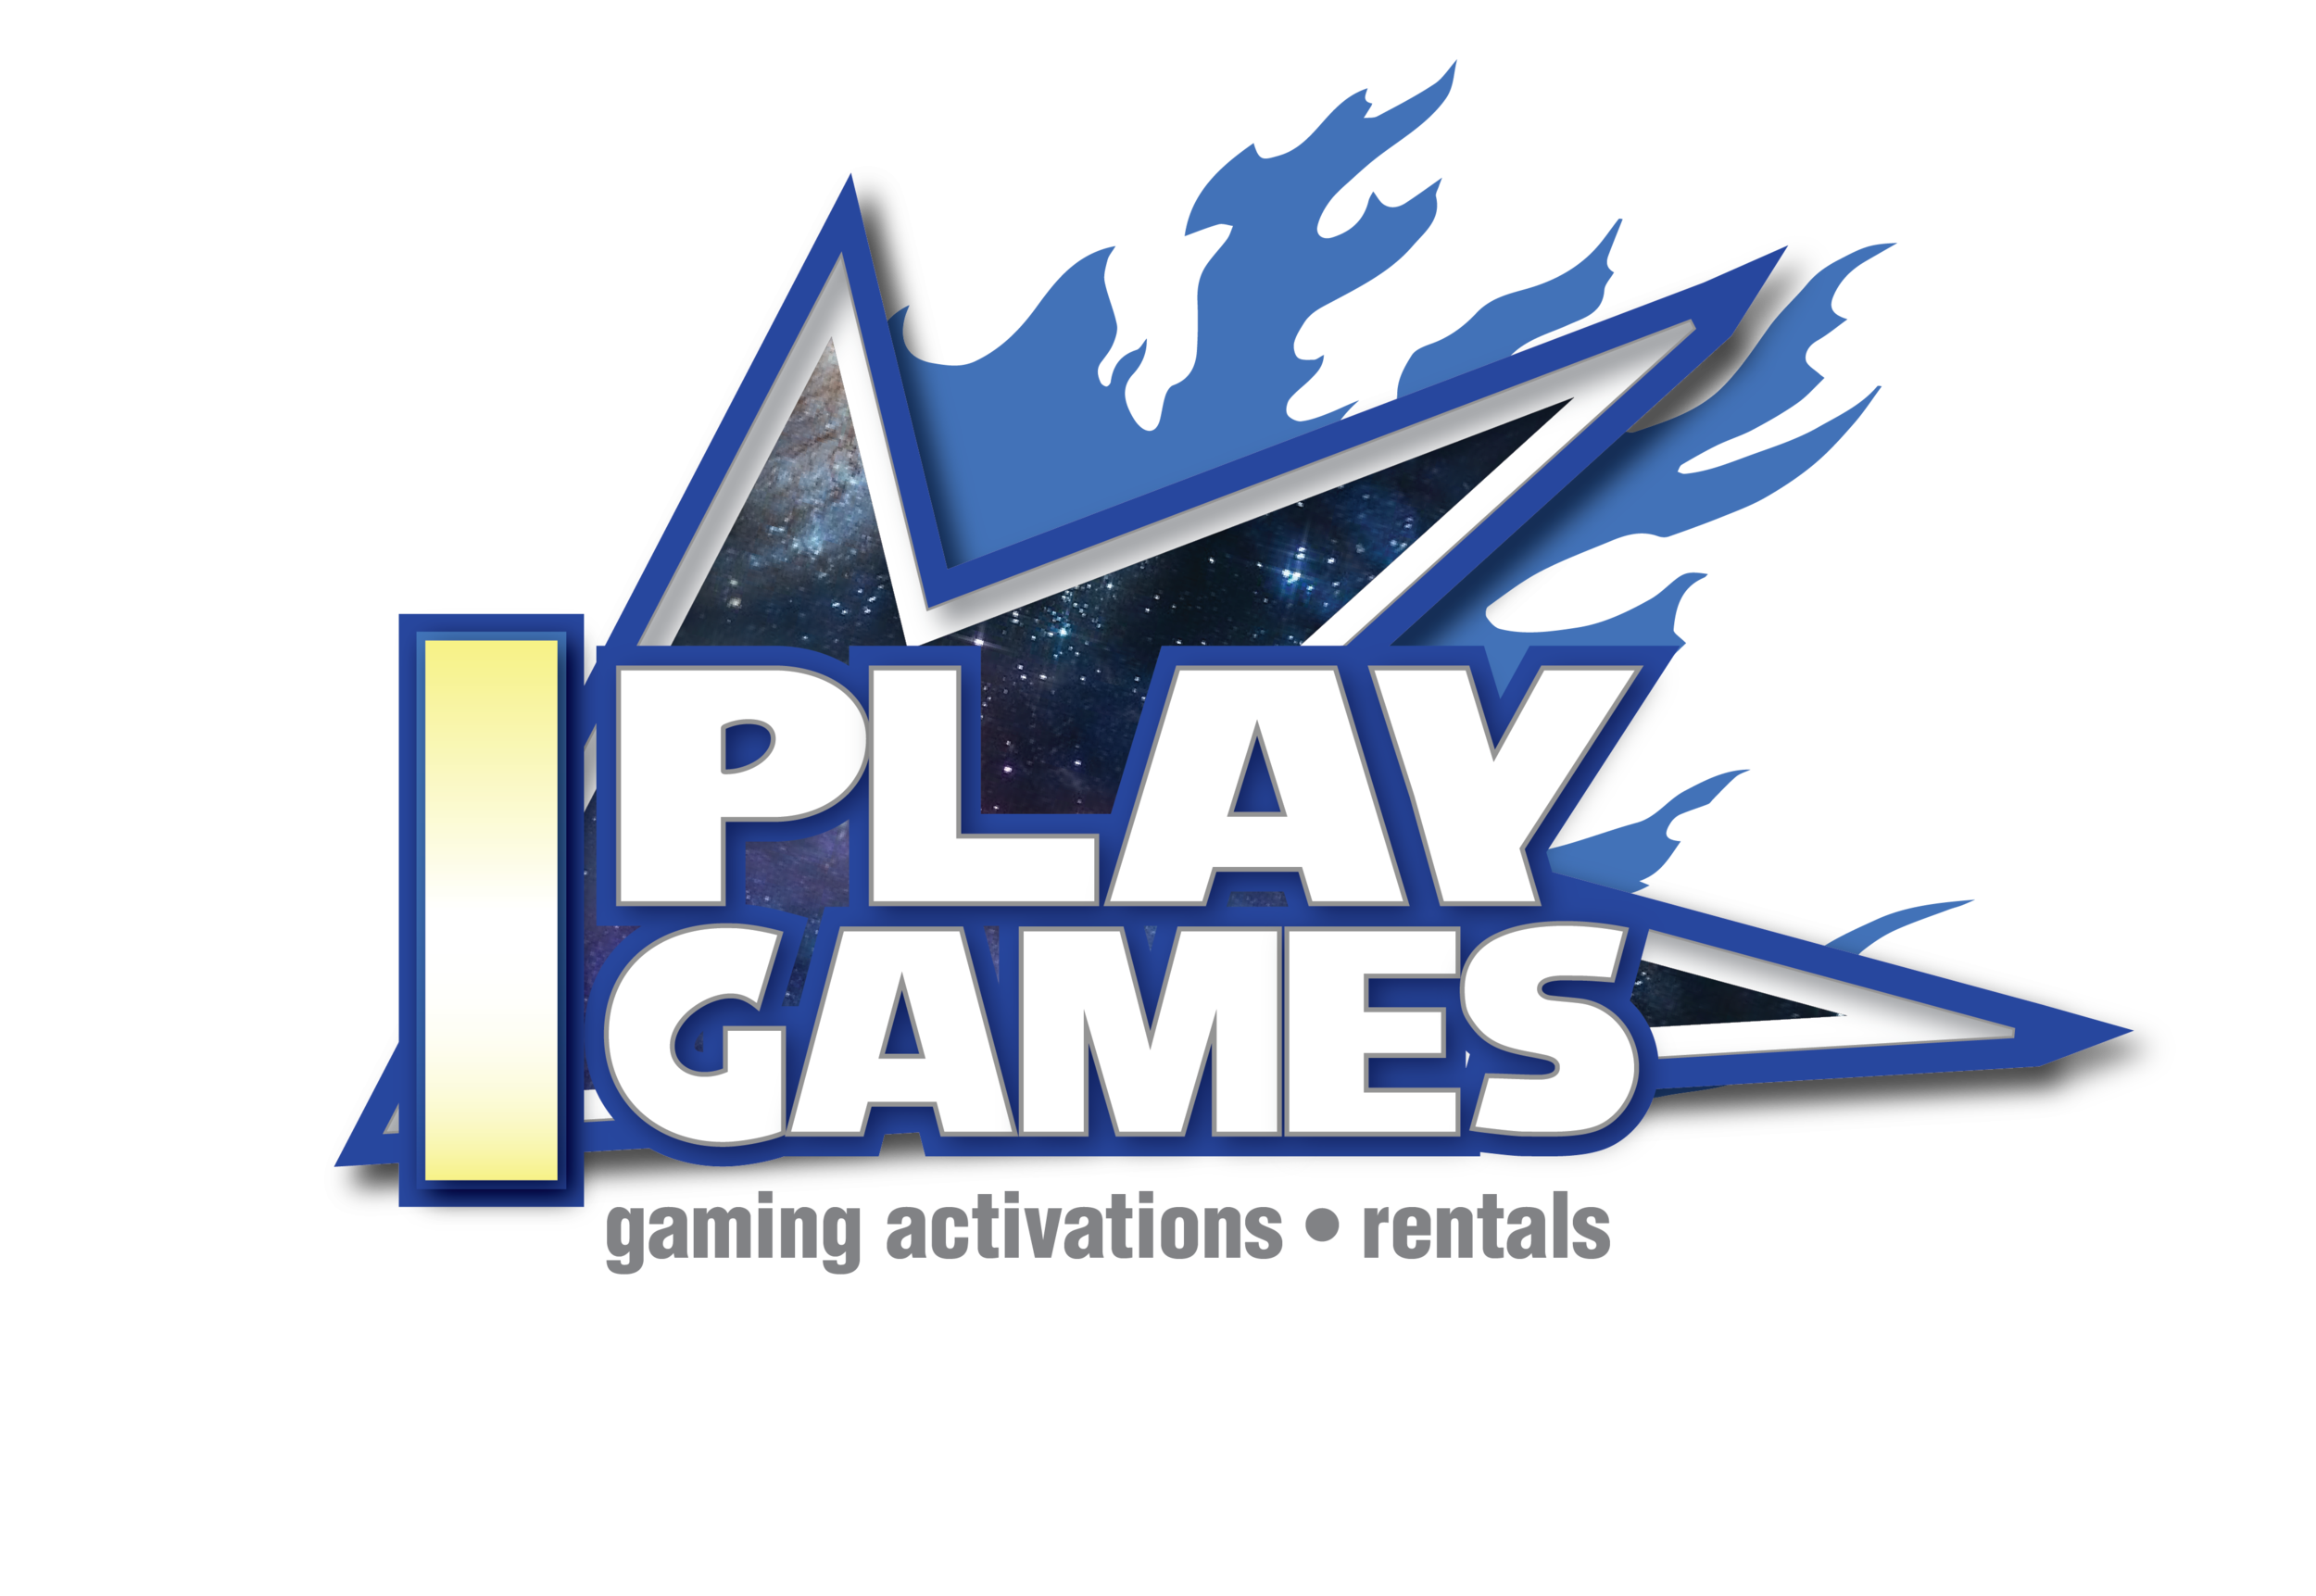 2019_I Play Games Brand (Blue Flame)-02.png